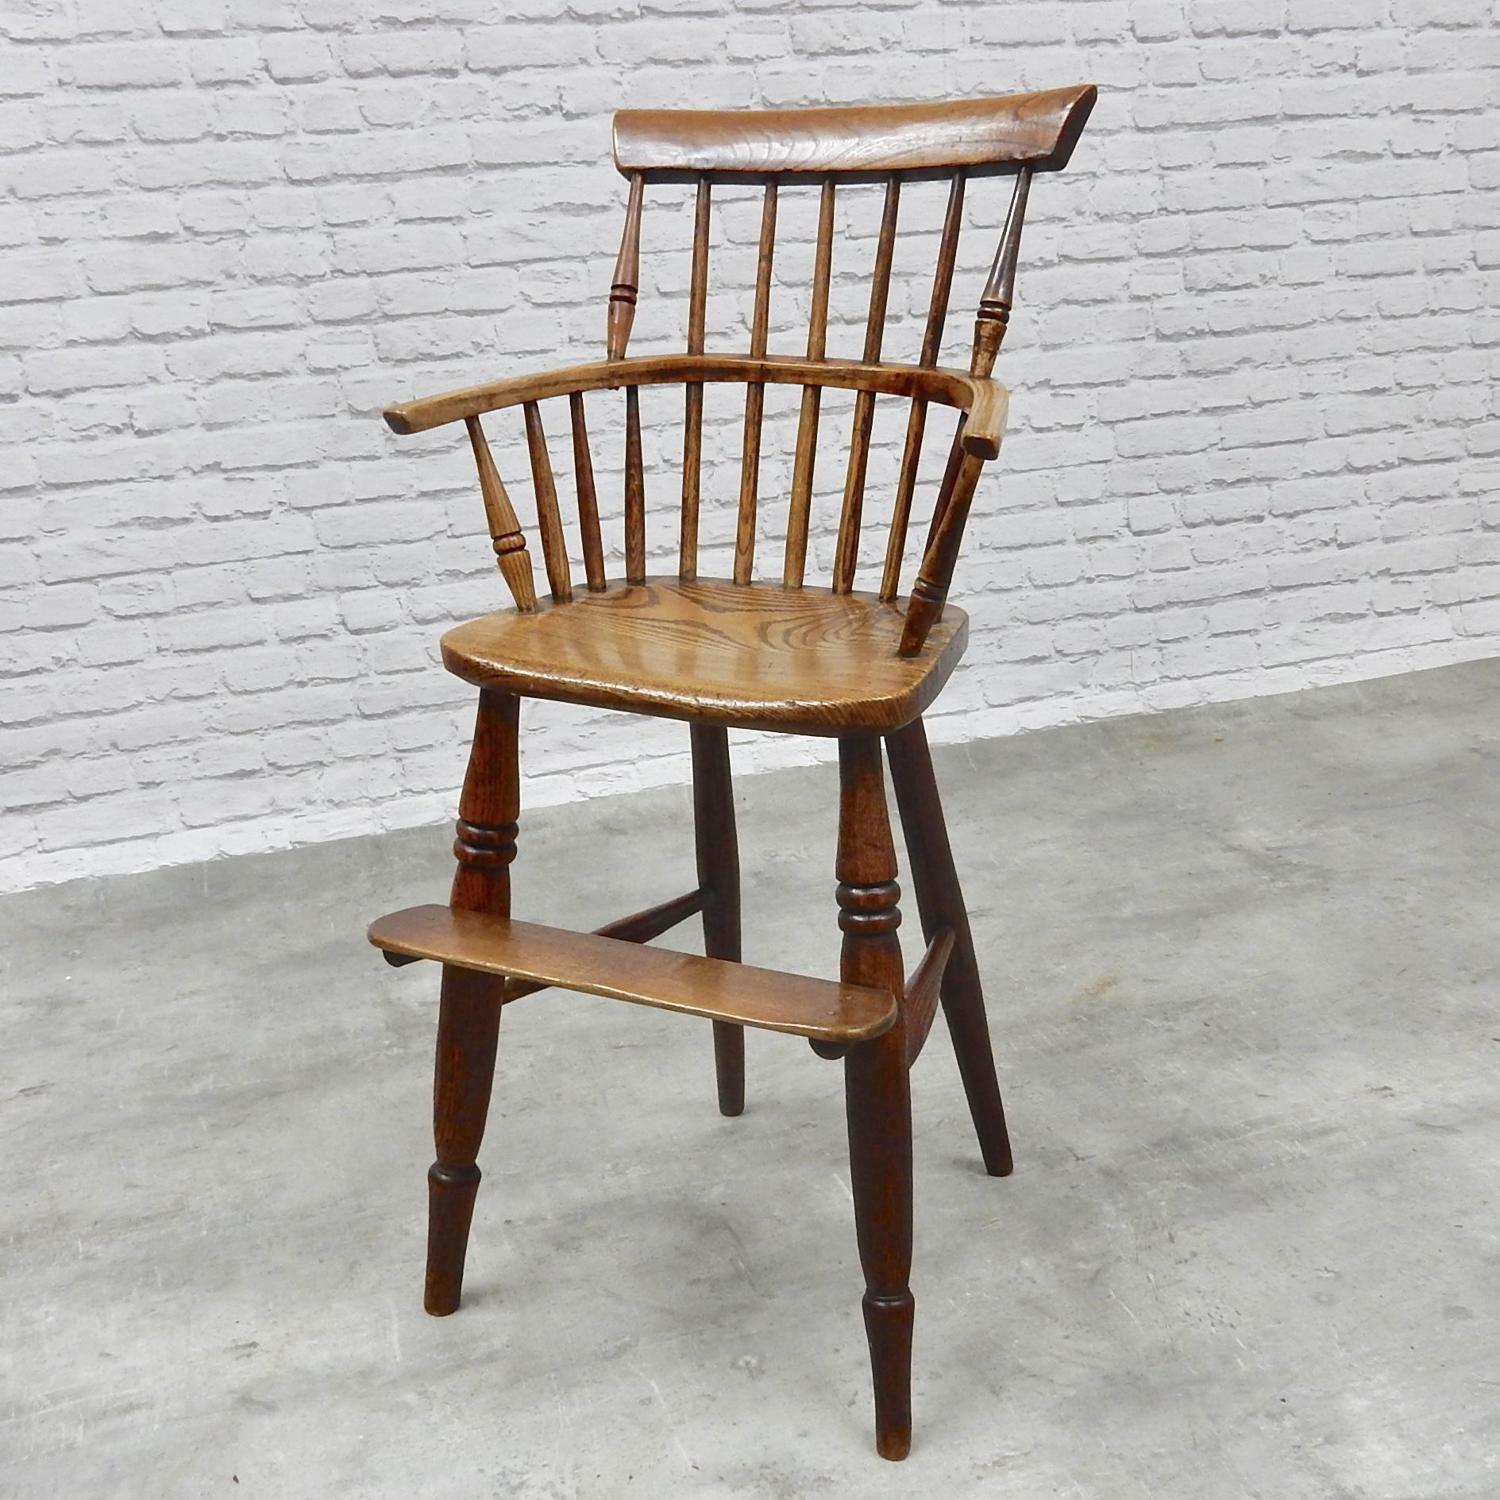 Antique Windsor Highchair